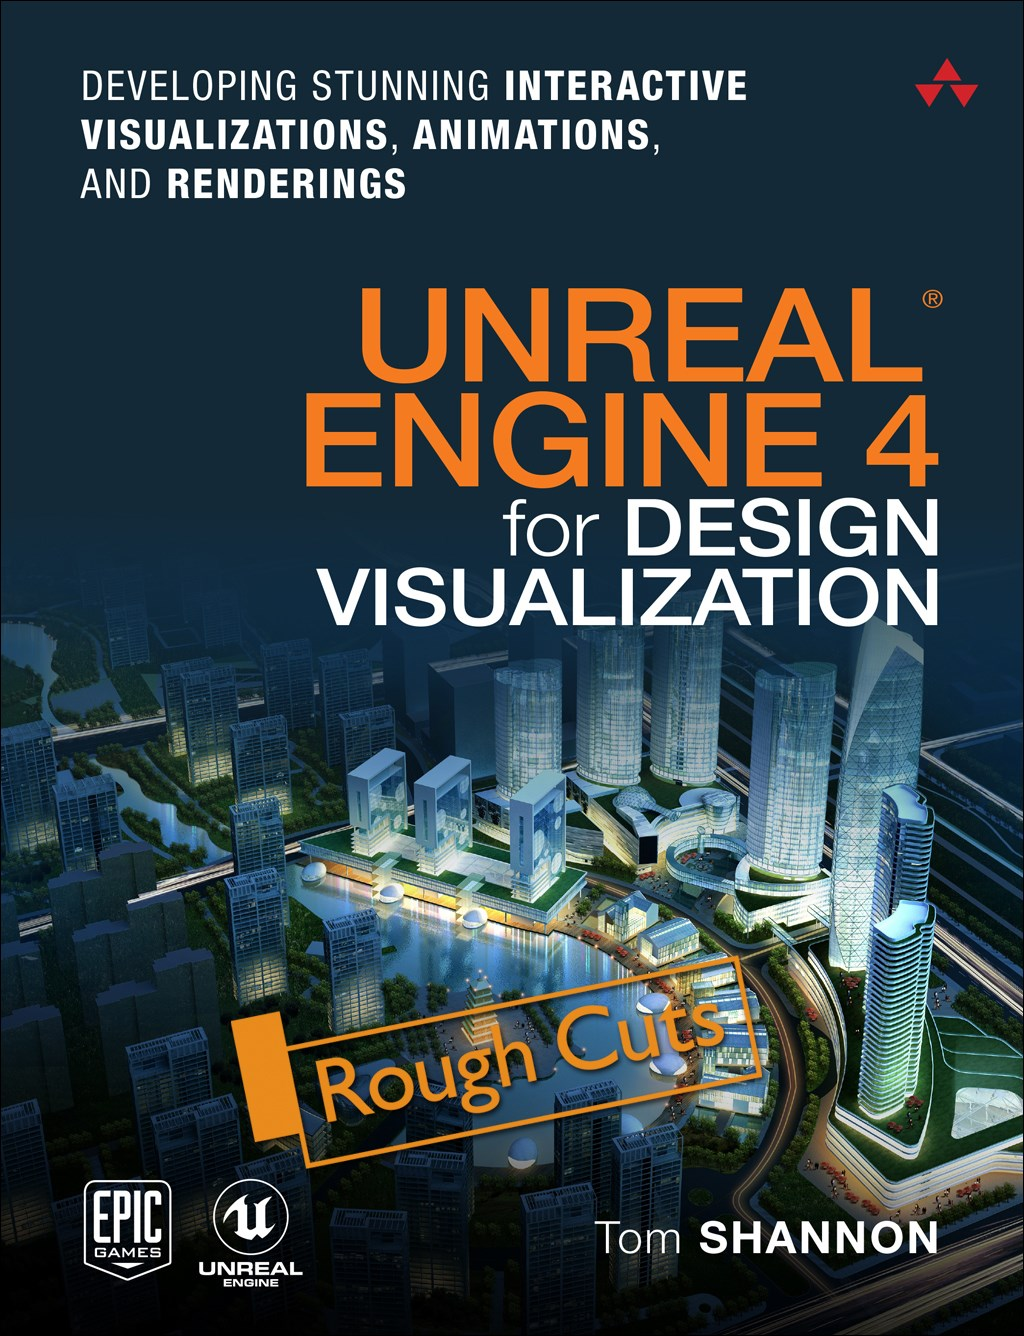 Unreal Engine 4 for Design Visualization: Developing Stunning Interactive Visualizations, Animations, and Renderings, Rough Cuts